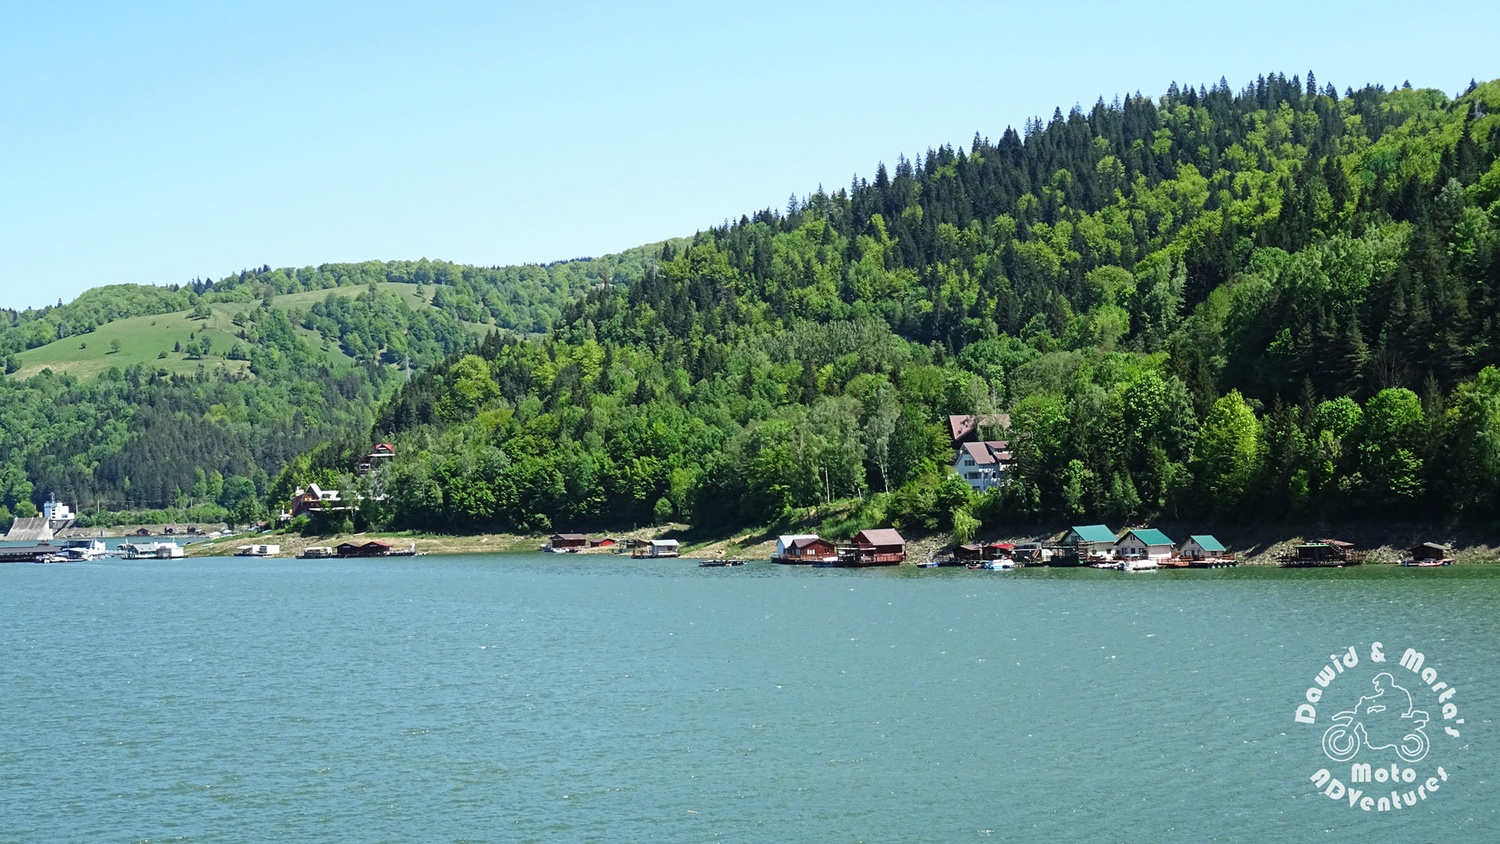 The Bicaz Lake coastline viewed from the Bicaz Dam